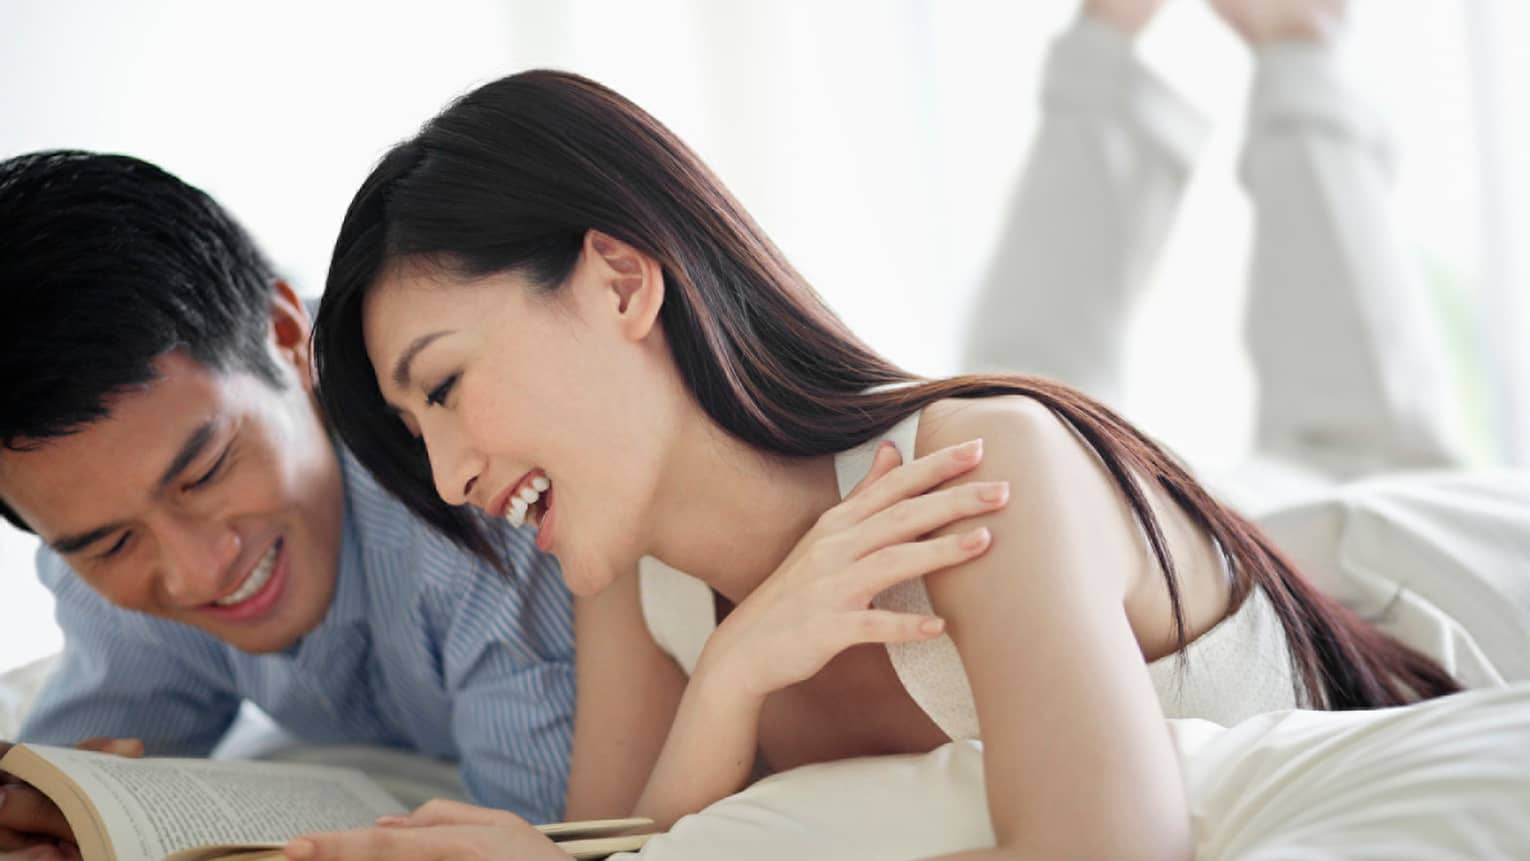 Smiling woman and man lounge on hotel bed, read book together